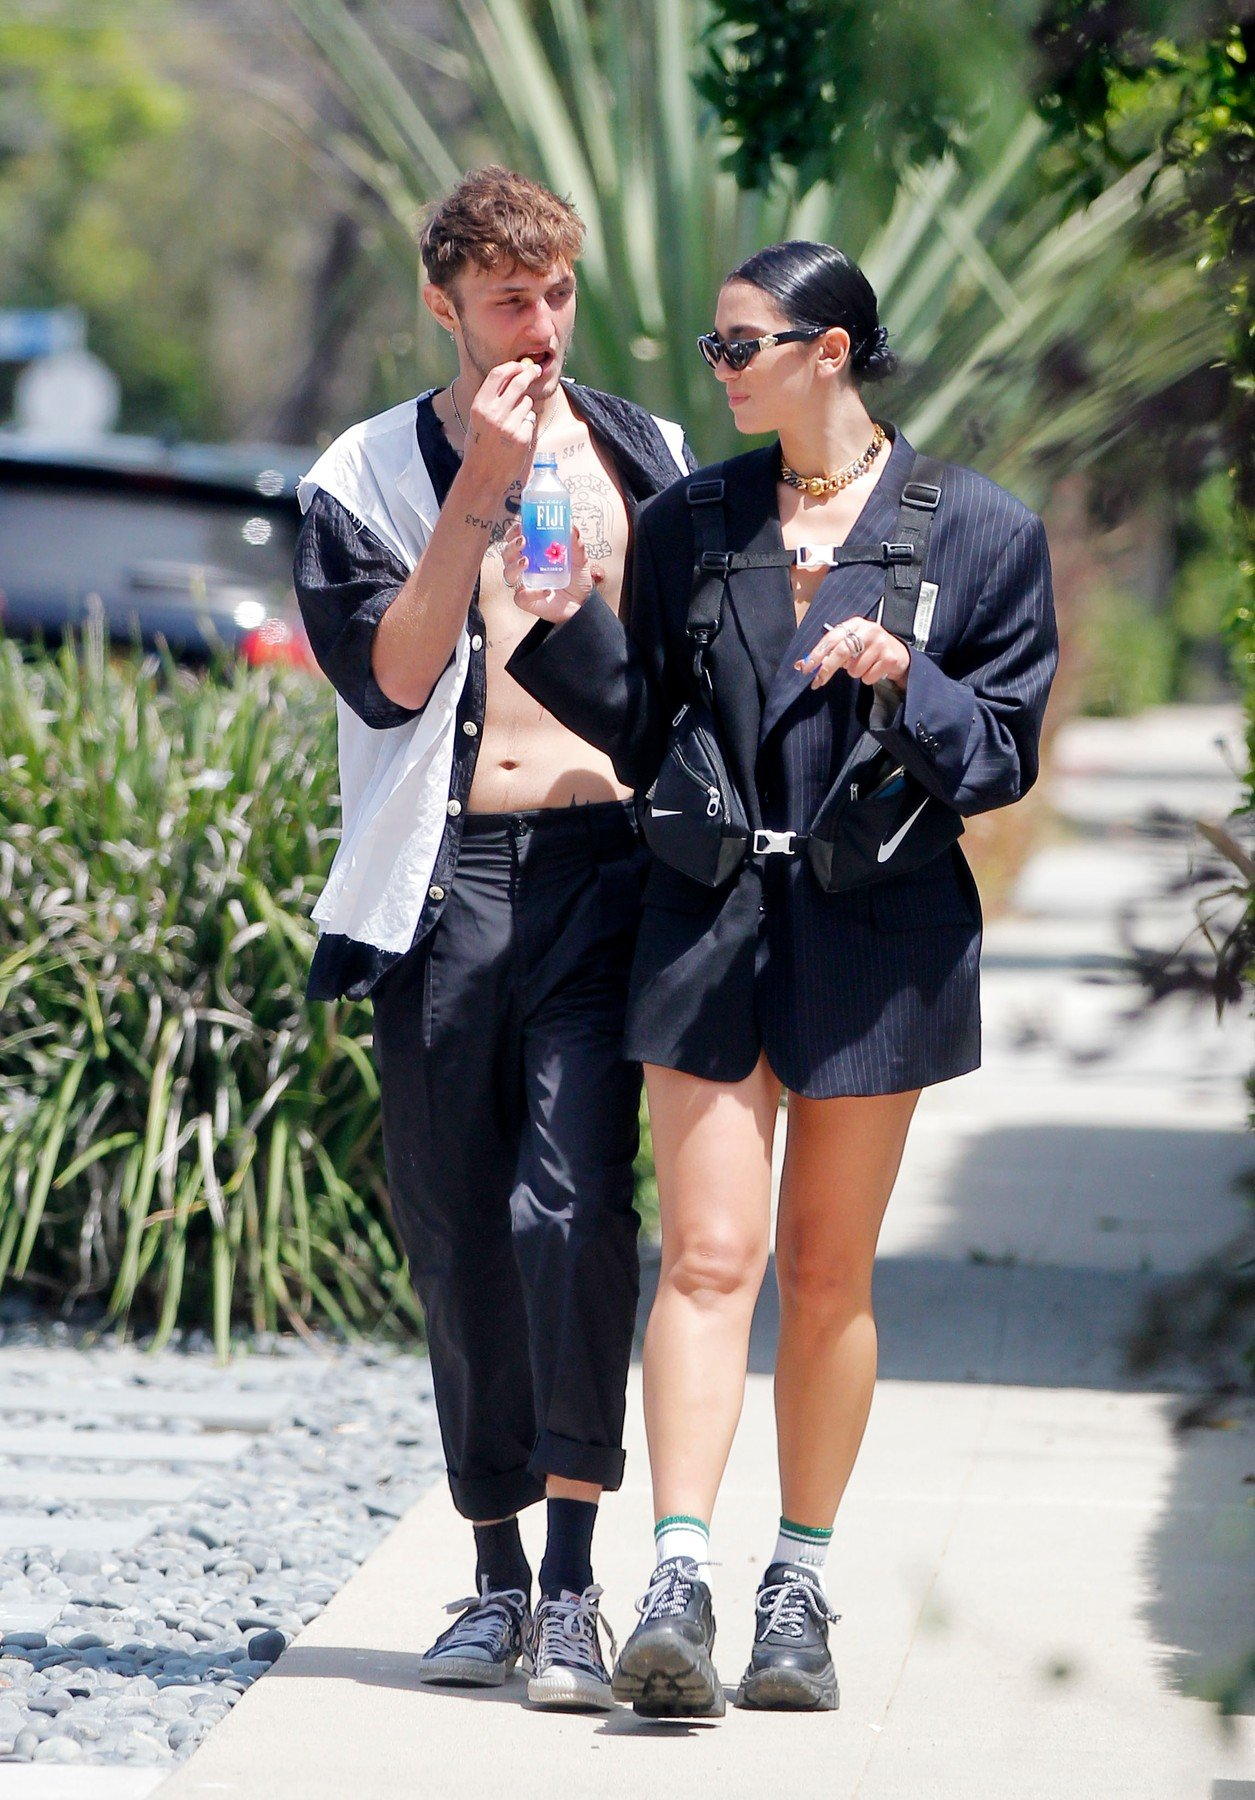 FIA EXCLU! Dua Lipa and boyfriend Anwar Hadid going strong as they hold each others hand. The new couple were spotted sharing some snack and Fiji water as the visit friends in beverly hills..08/18/19, Image: 466018150, License: Rights-managed, Restrictions: , Model Release: no, Credit line: Profimedia, FIA